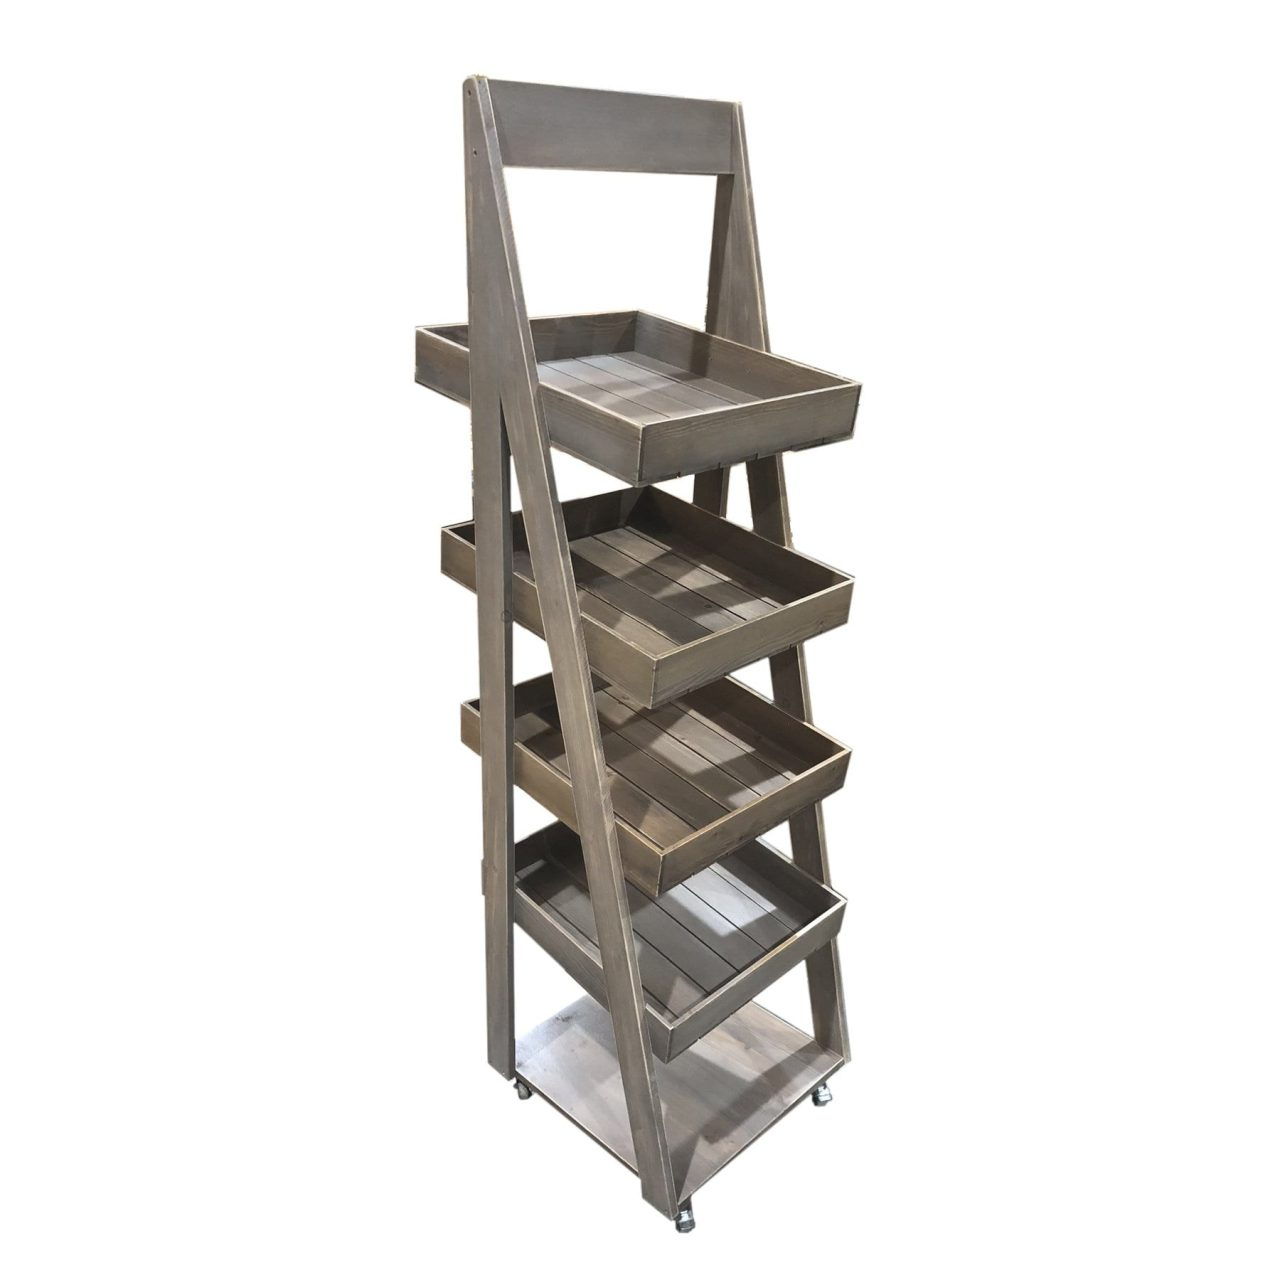 Weathered Rustic 4 Tier Slanted Wooden A Frame Display Stand 450X515X1800